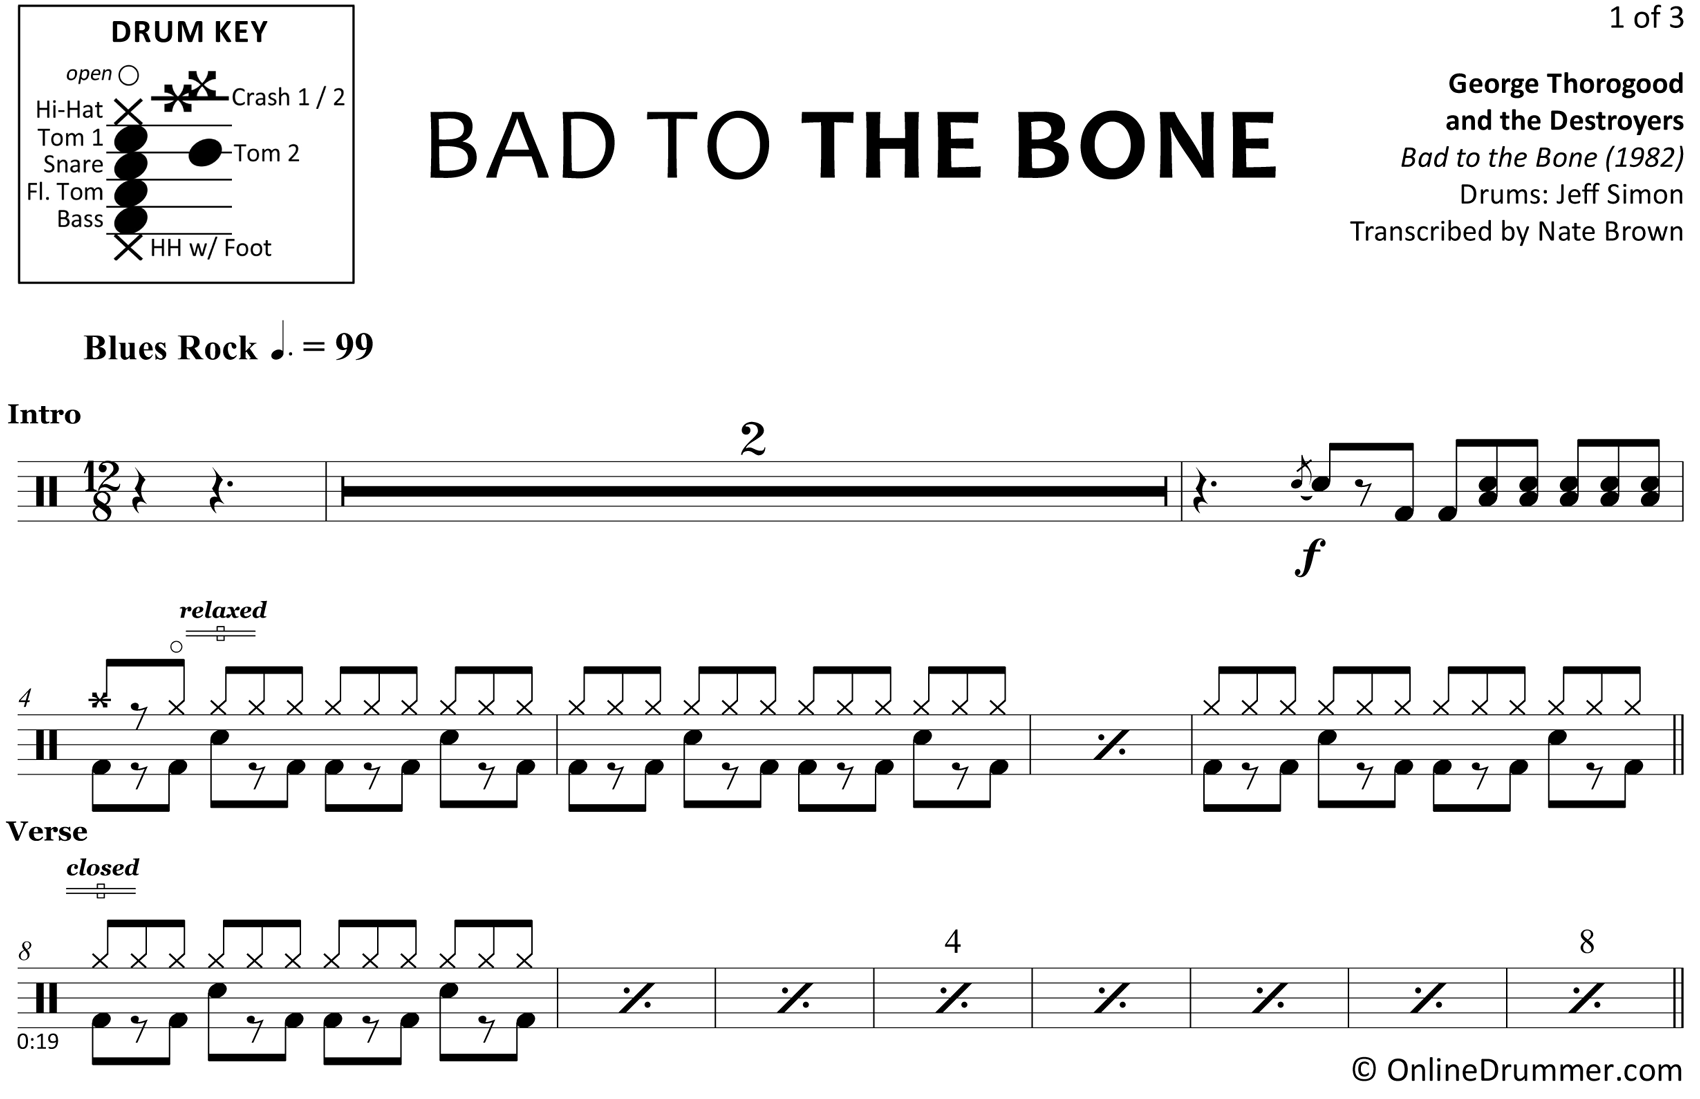 Bad to the Bone - George Thorogood and the Destroyers - Drum Sheet Music